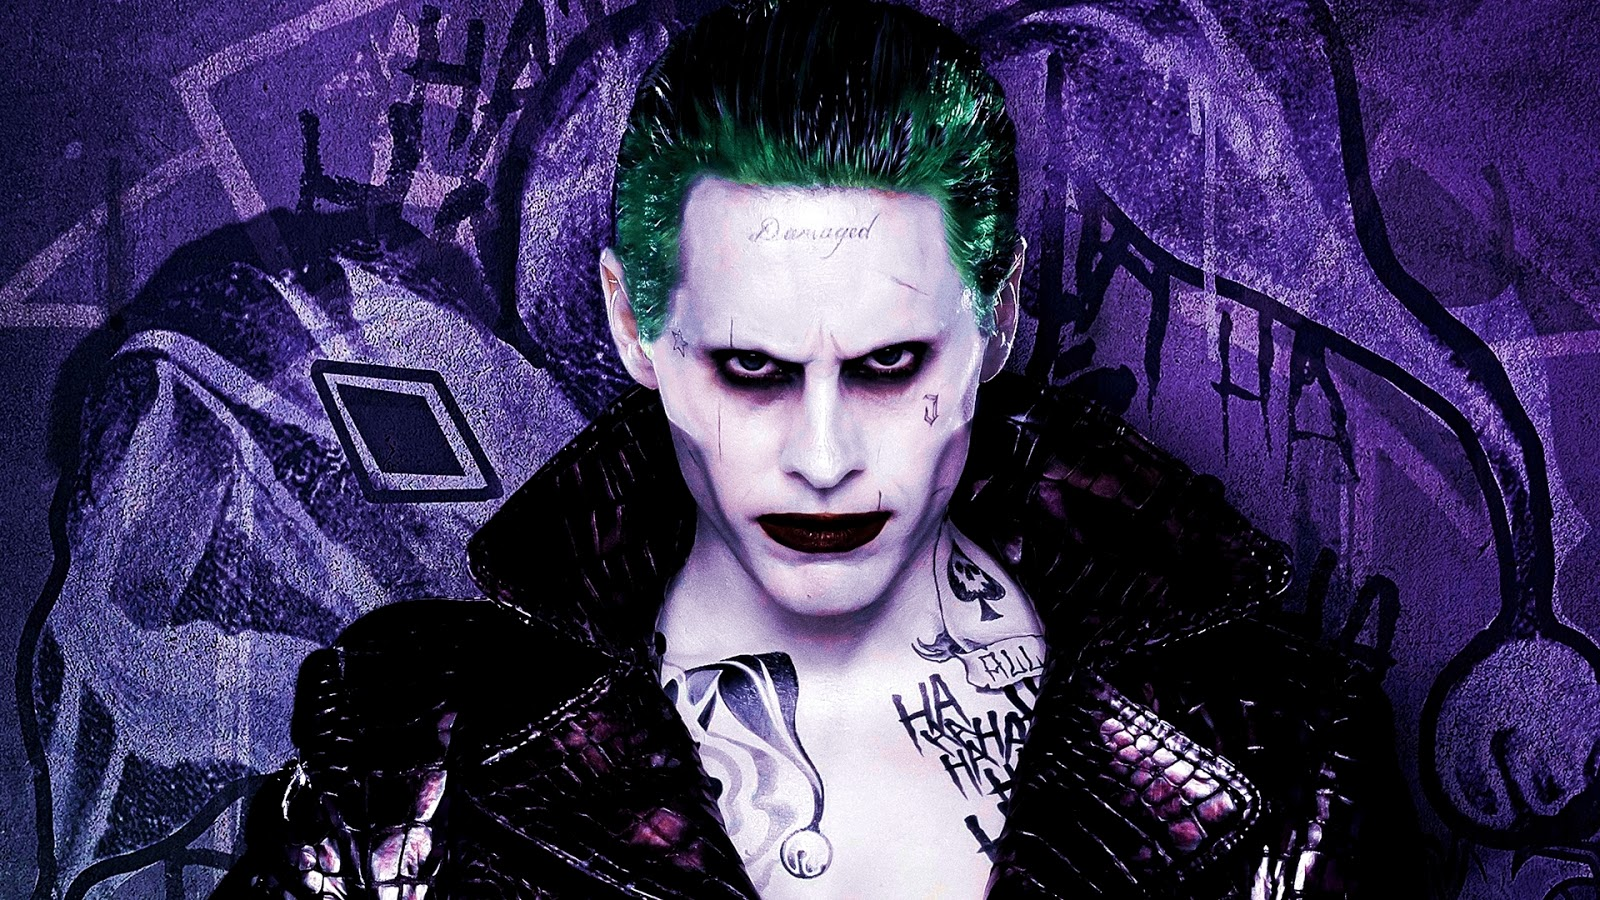 Suicide Squad - The Joker - Jared Leto - 1920x1080 Wallpapers - Full